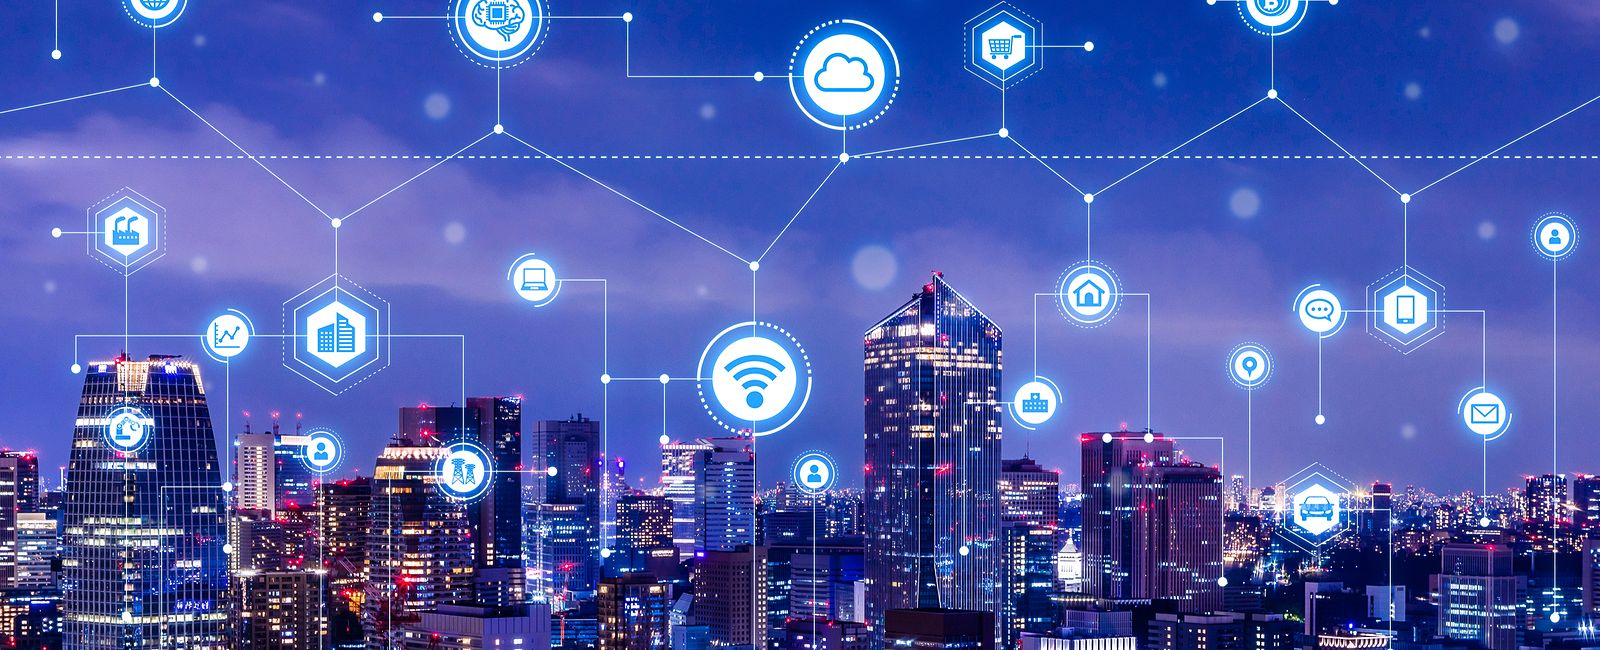 the-evolution-of-converged-networks-iot-is-here-to-stay